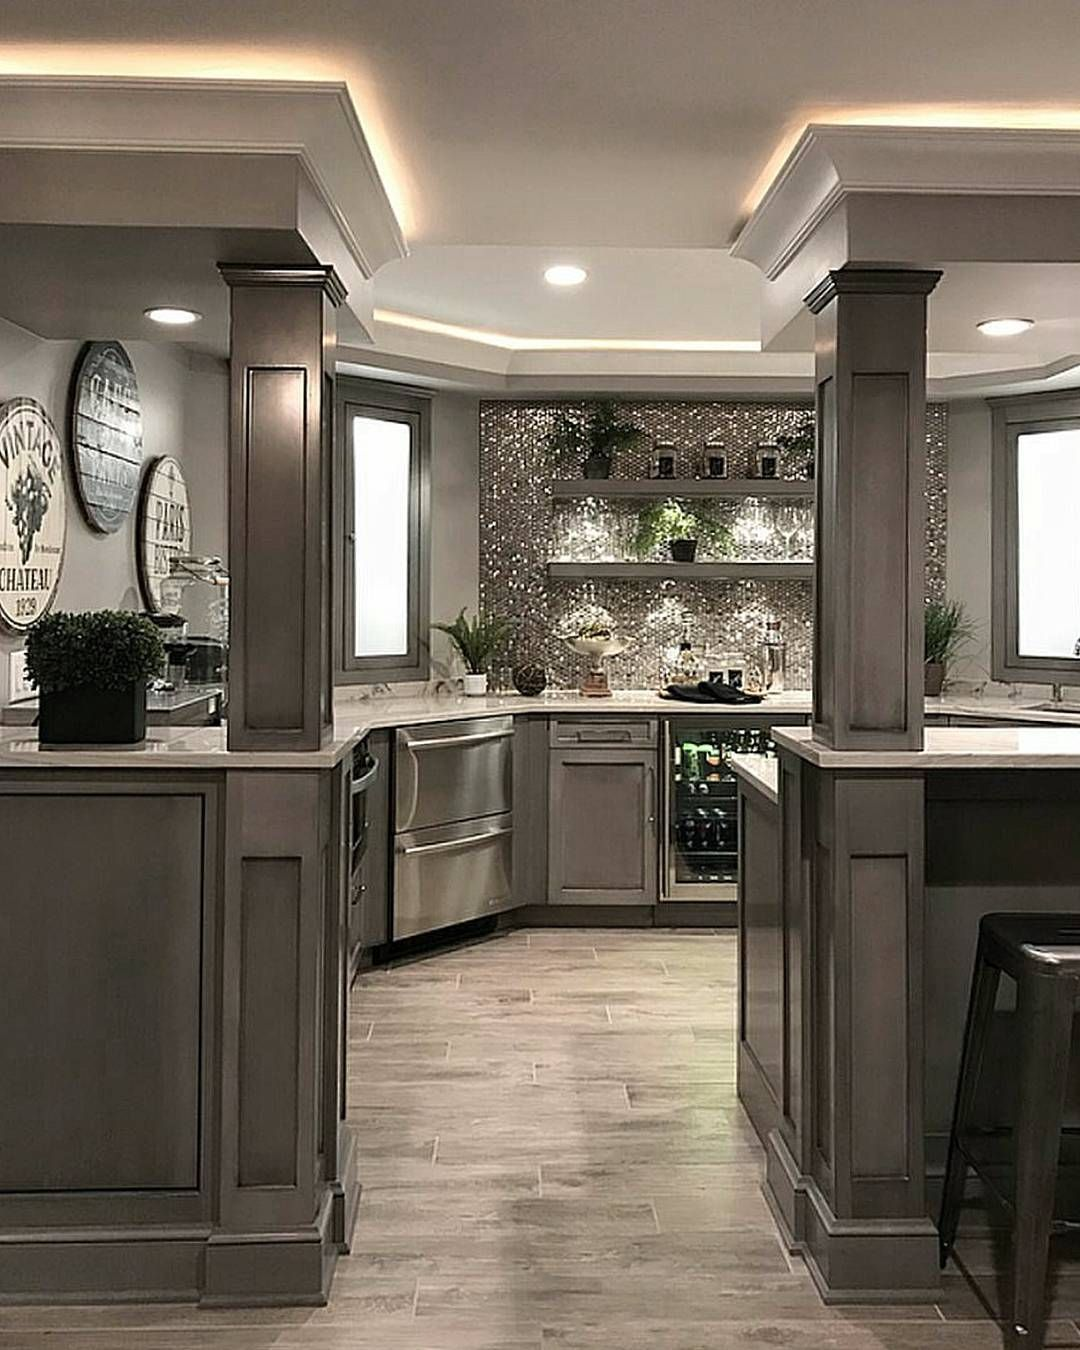 Grace home decor on instagram  chow stunning is this basement kitchen    also loving her photography skills sumhouse sumwear elegant house best homes to die for images in future modern rh pinterest